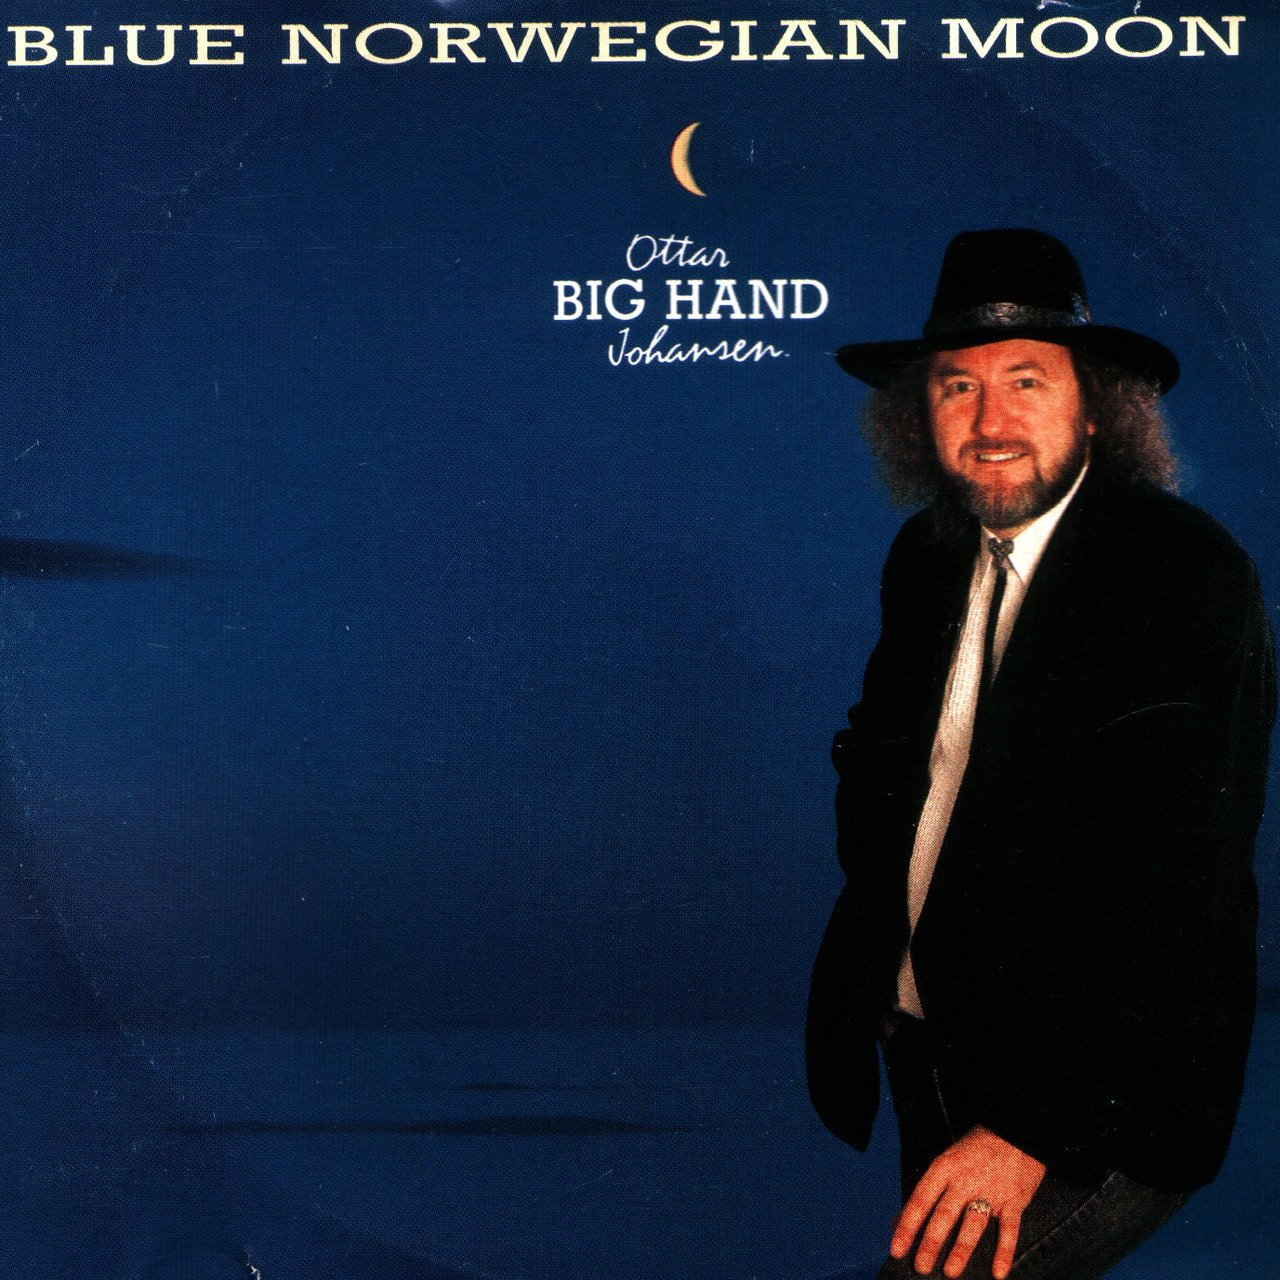 Blue Norwegian Moon